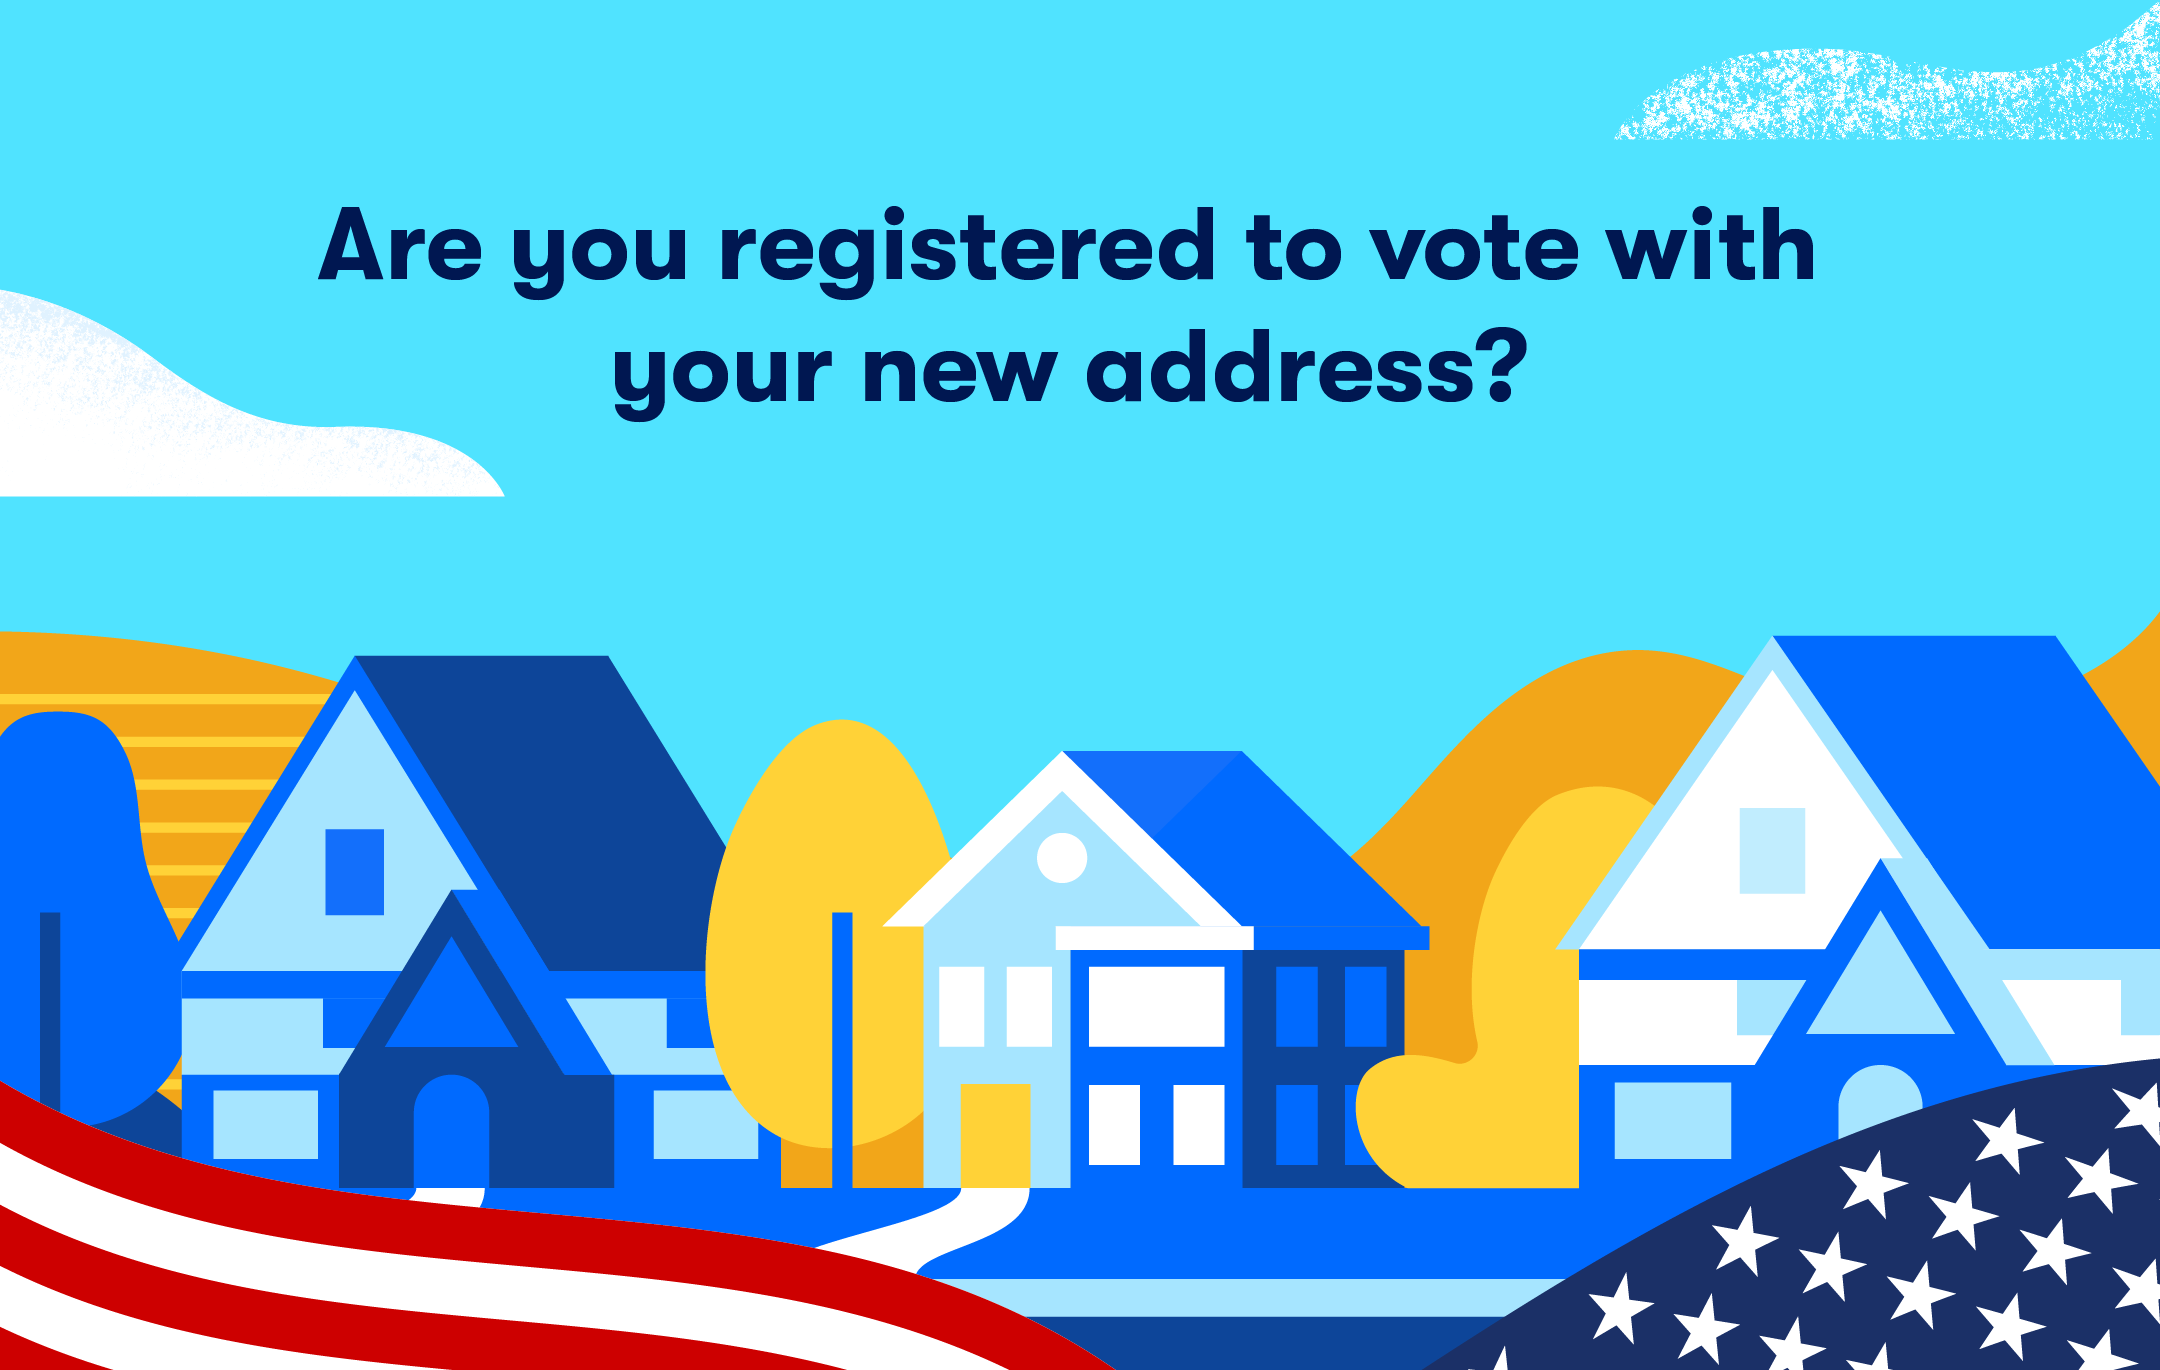 graphic that asks reader if they are registered to vote